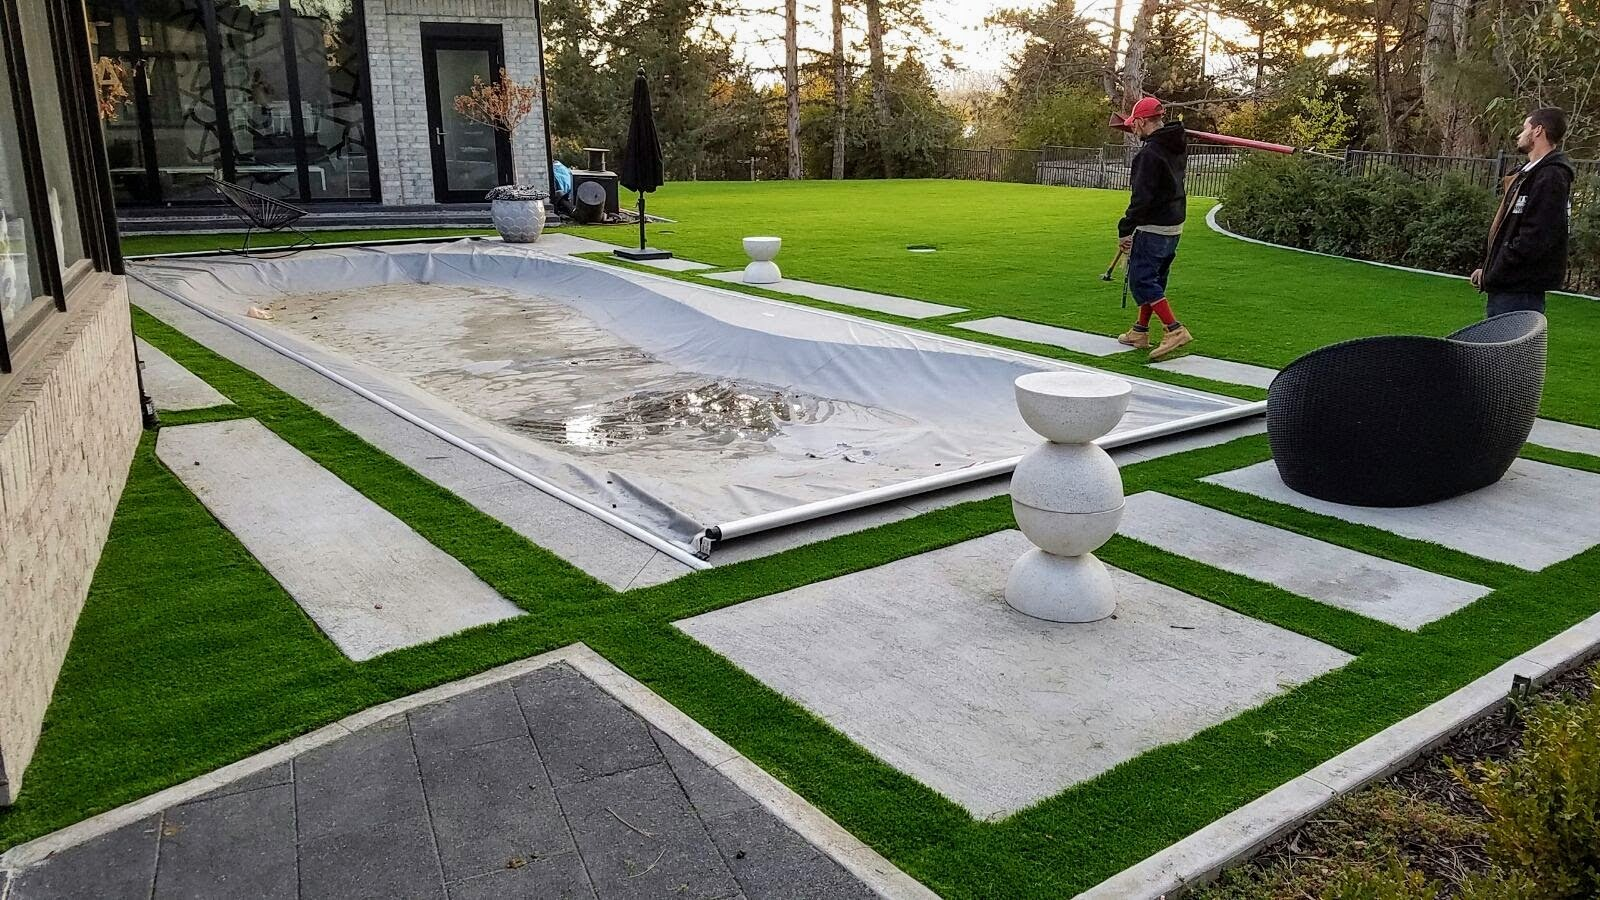 All Season Prime Synthetic Grass - Artificial Turf - Drainage Holes, 2'' blades Great for Sunny Climates (10' x 15') by Turf Pros Solution (Image #6)